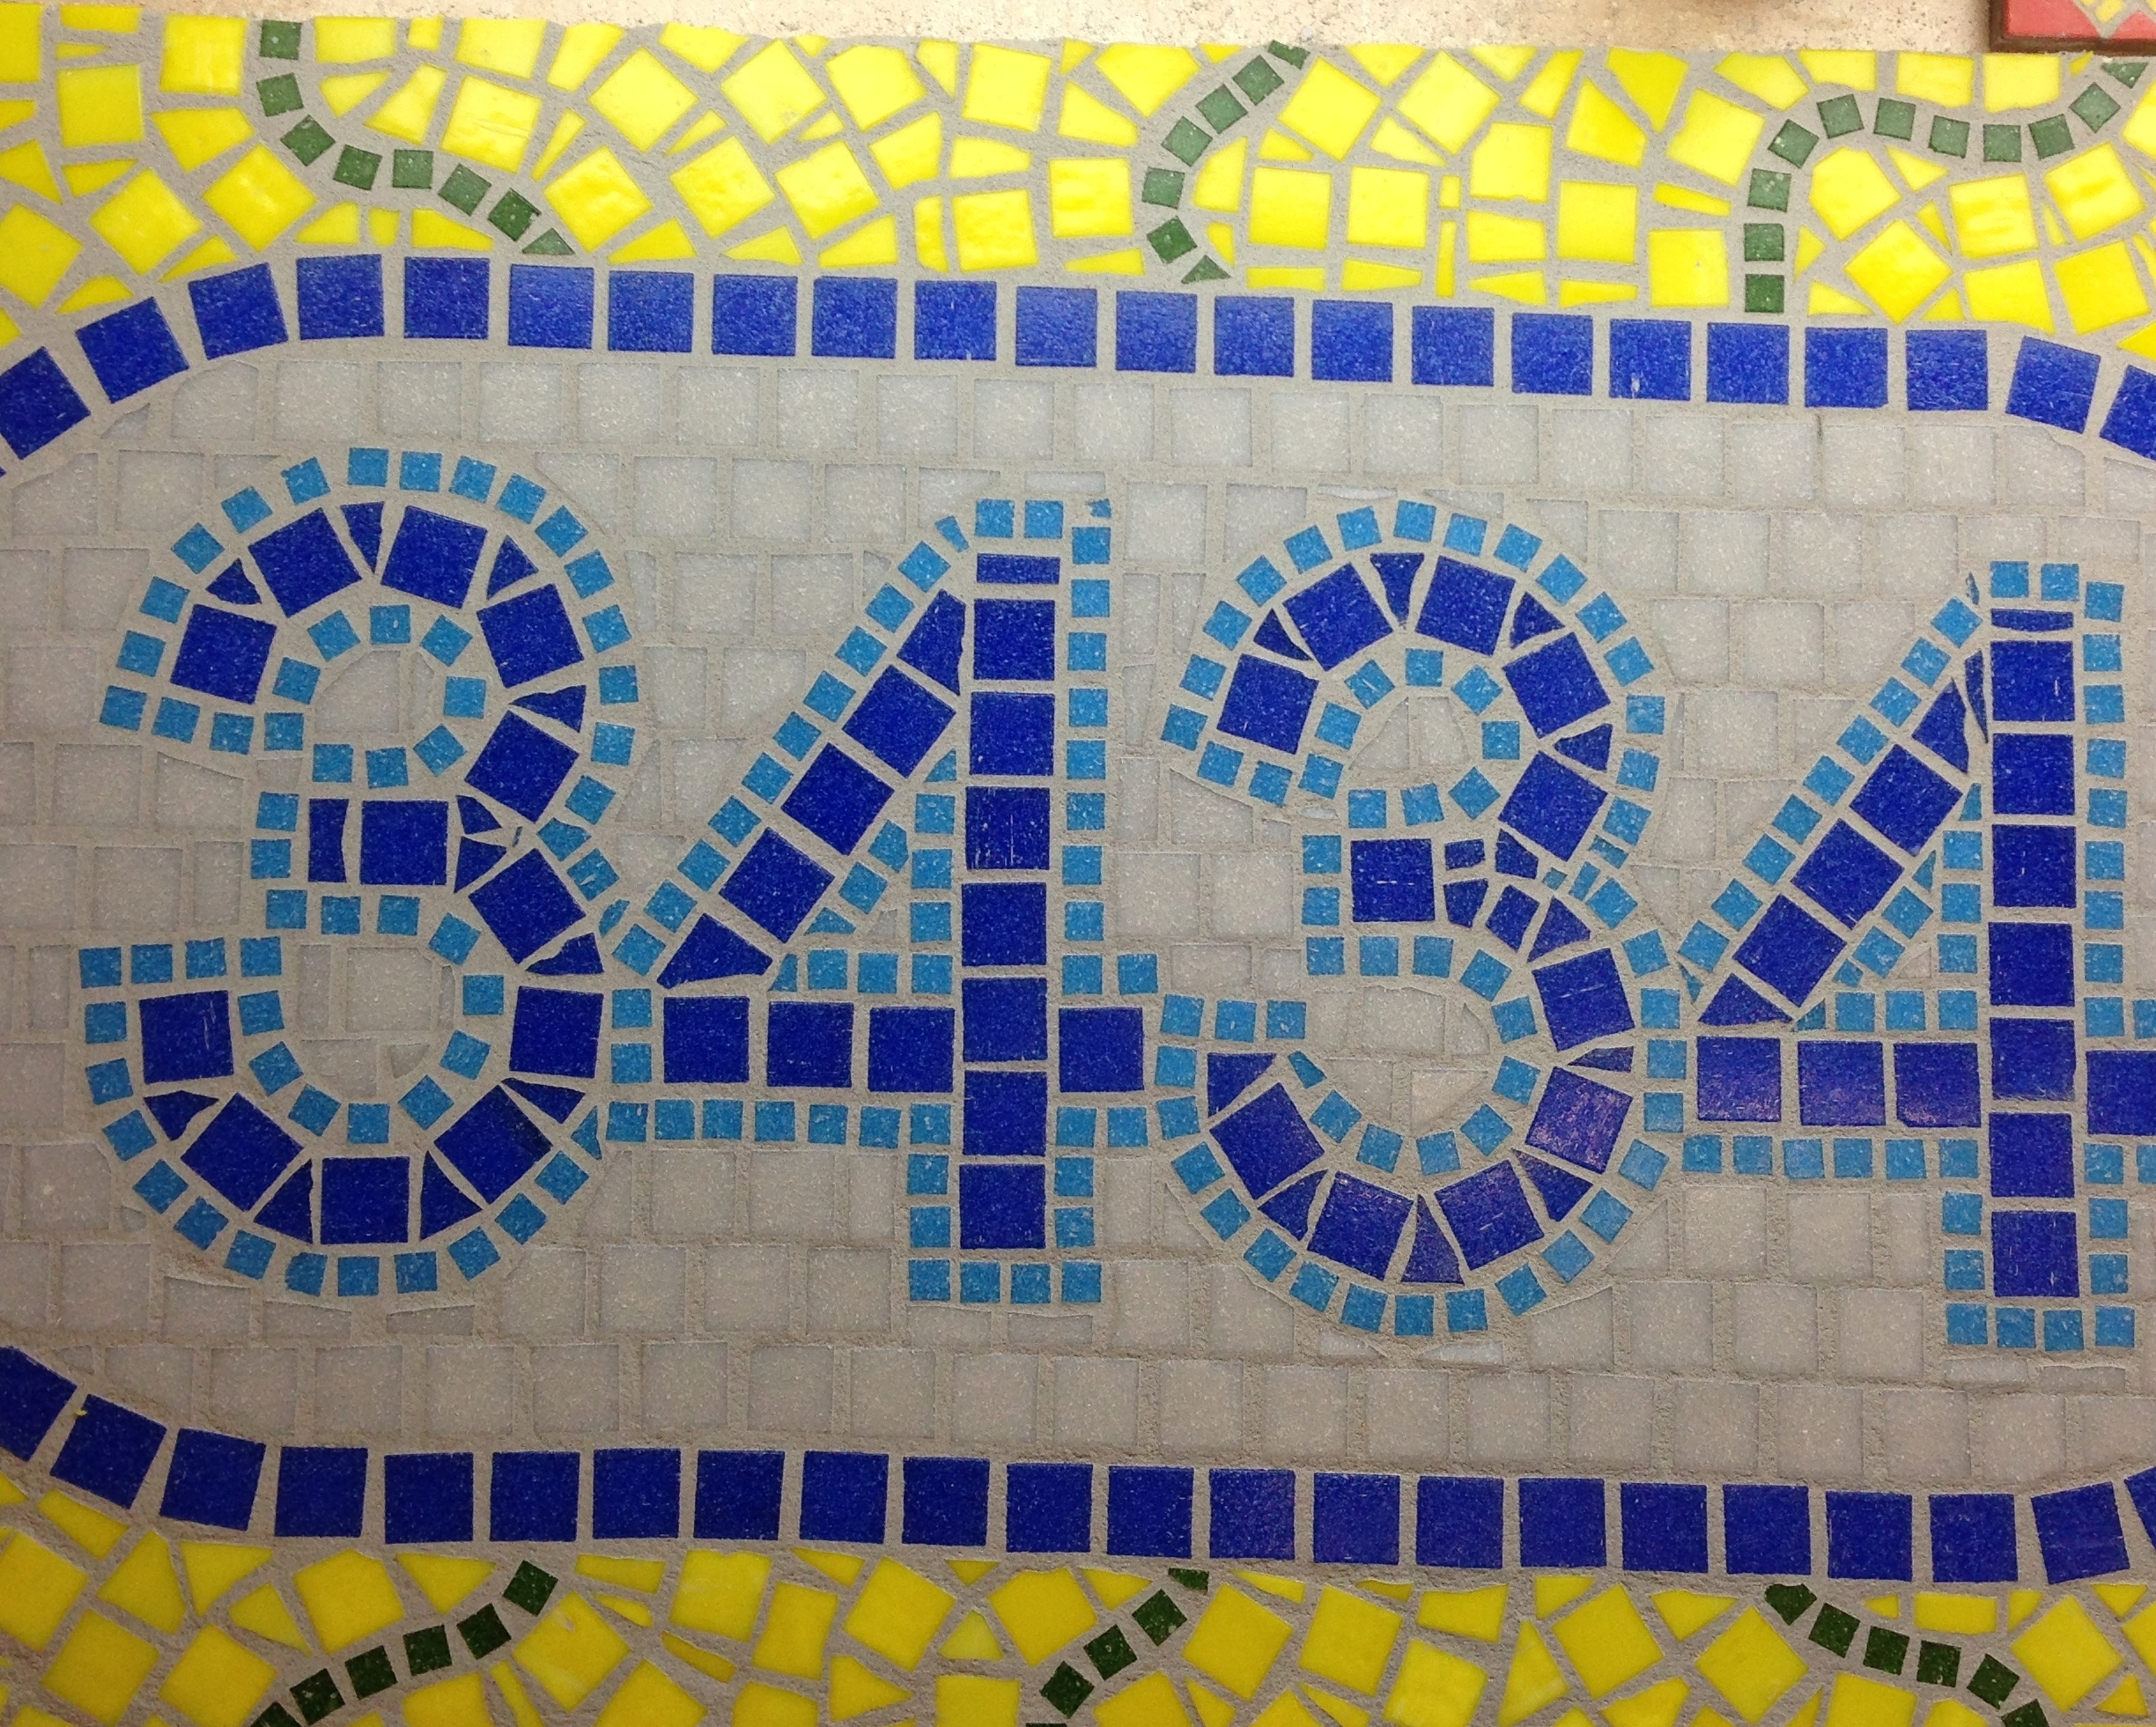 mosaic_house_number.jpg